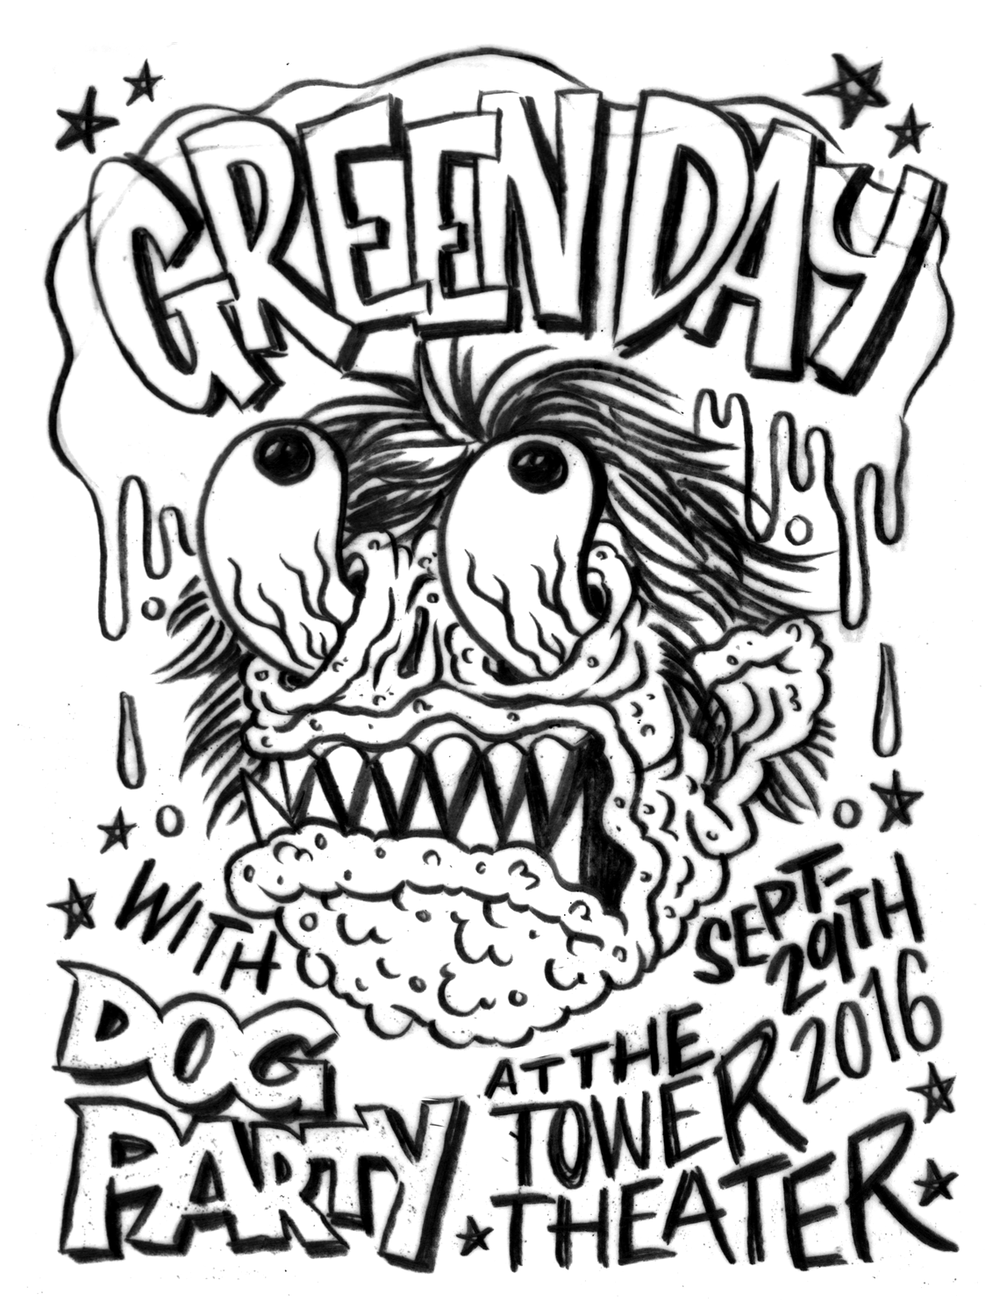 GREENDAY_Poster_Sketch_No3.png